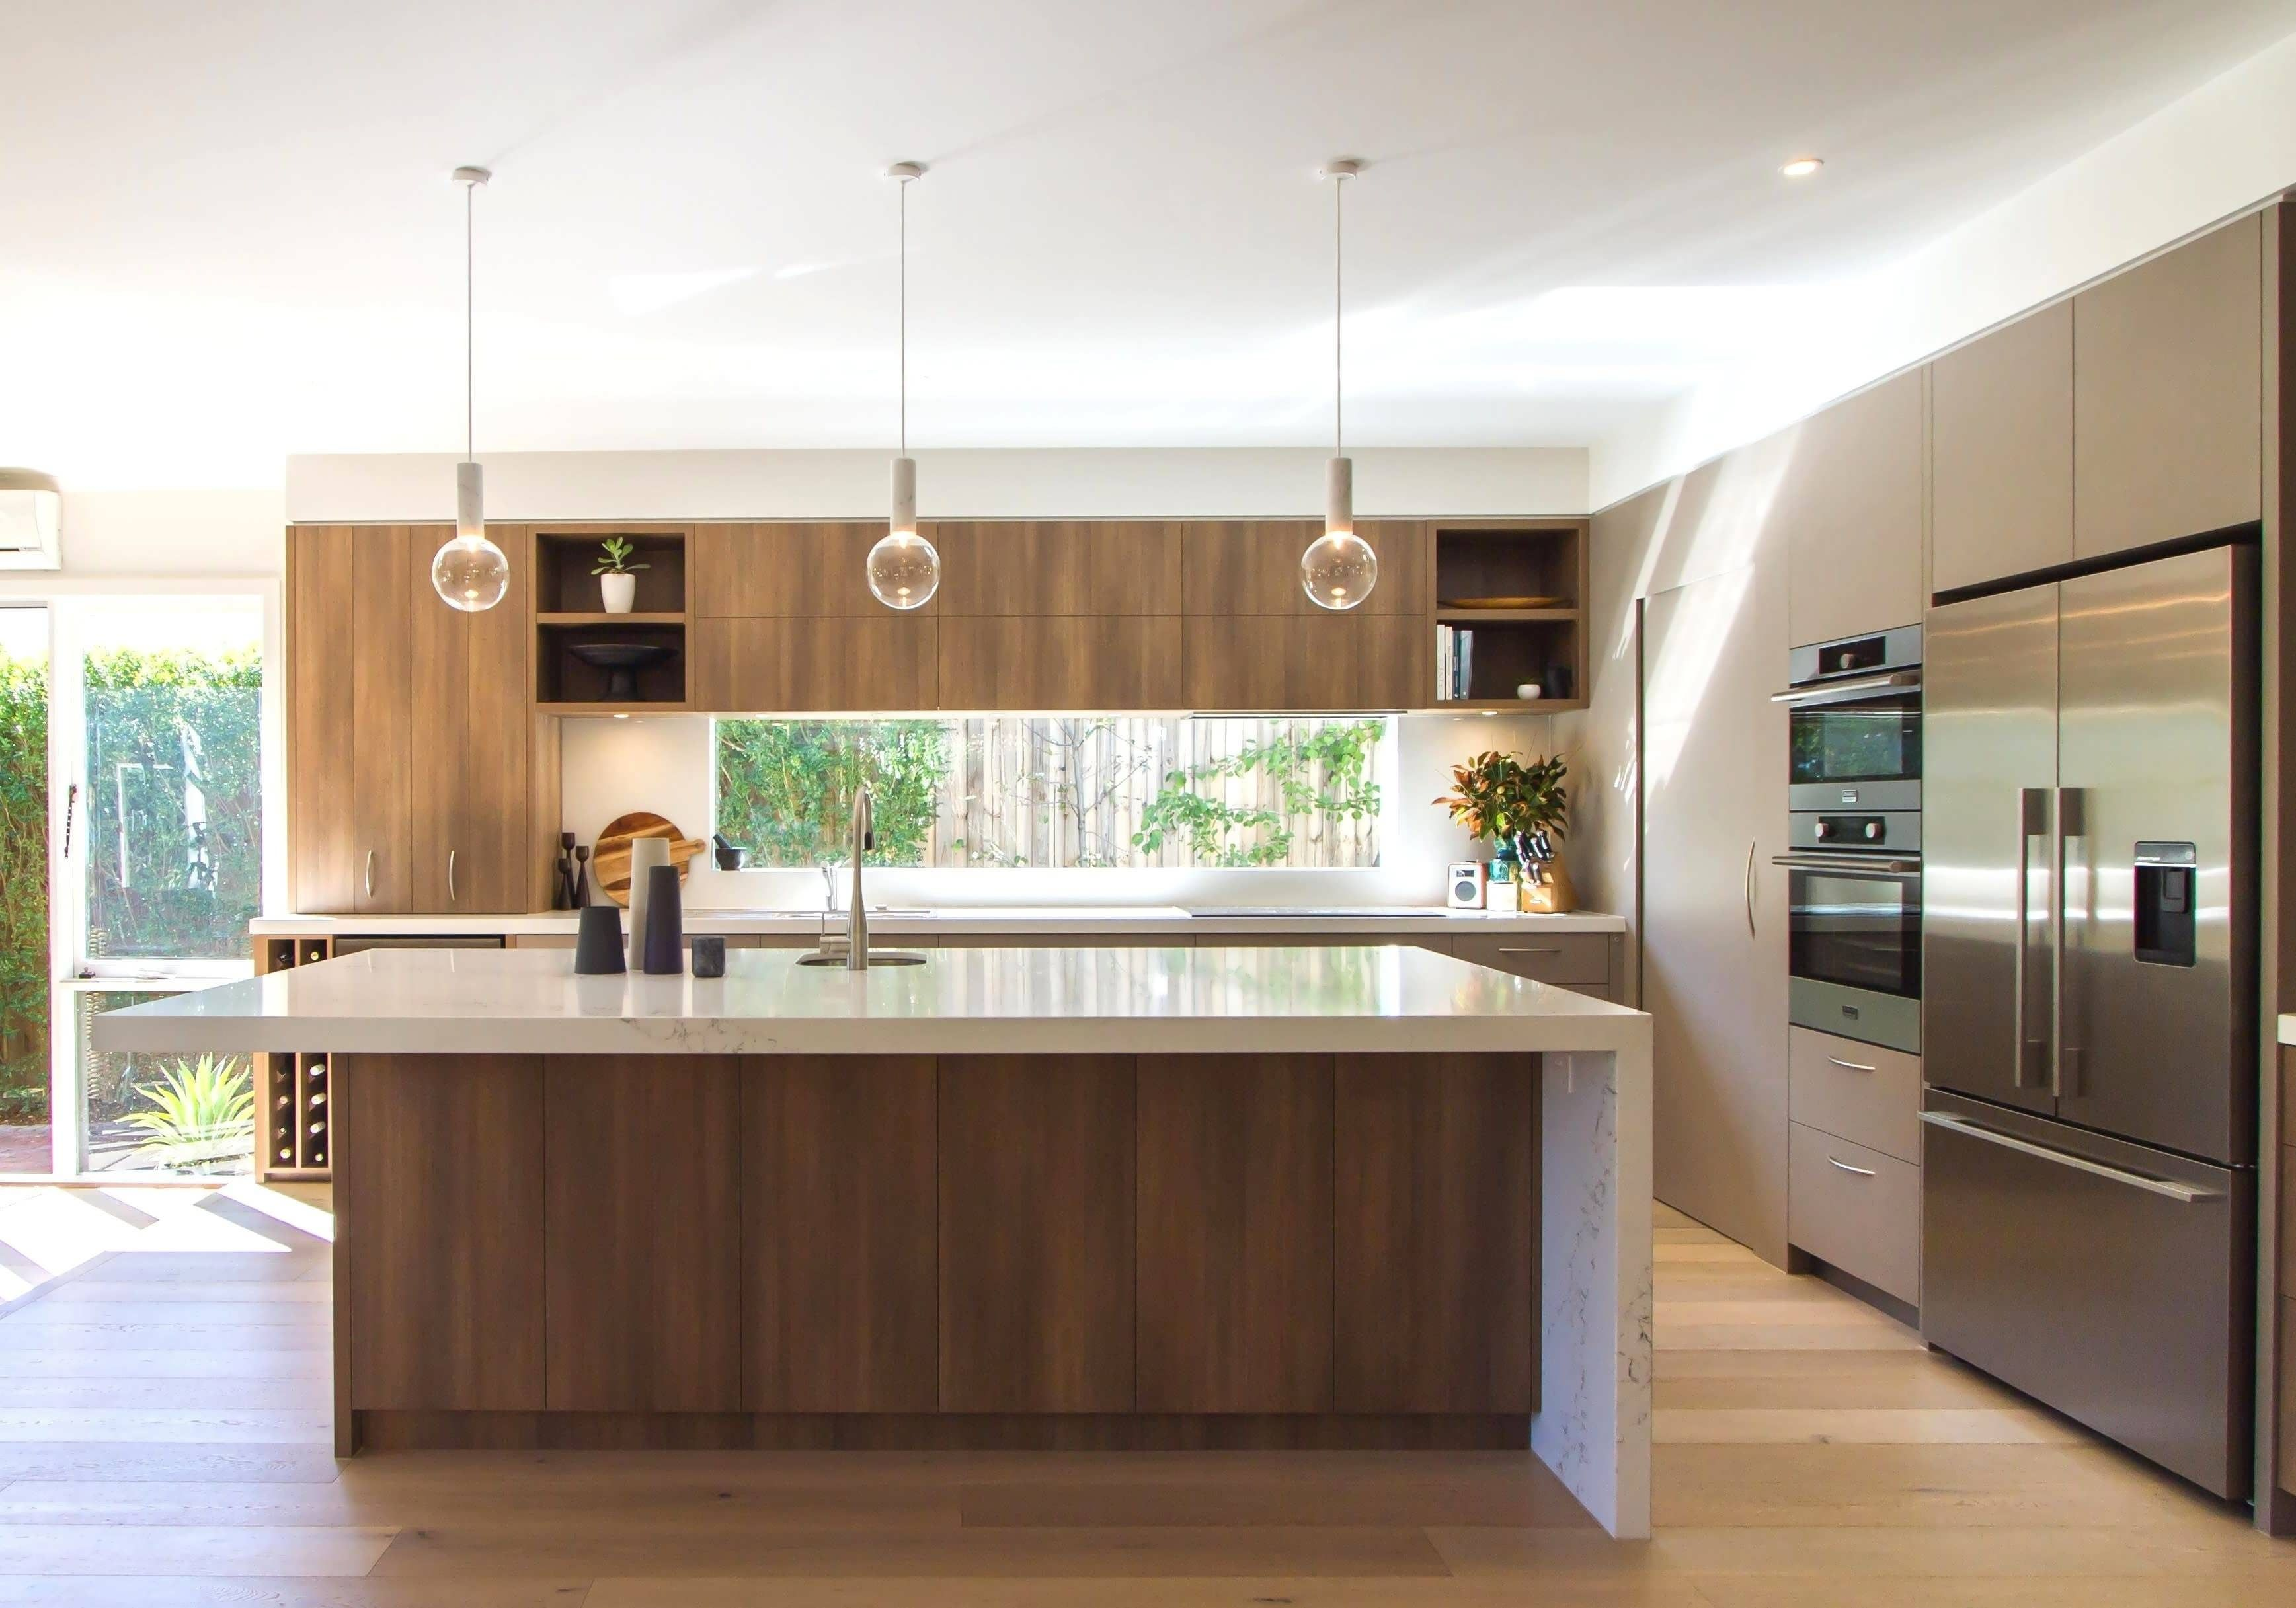 Image Result For Modern L Shaped Kitchen With Island Contemporary Kitchen Island Modern Kitchen Island Contemporary Kitchen Design